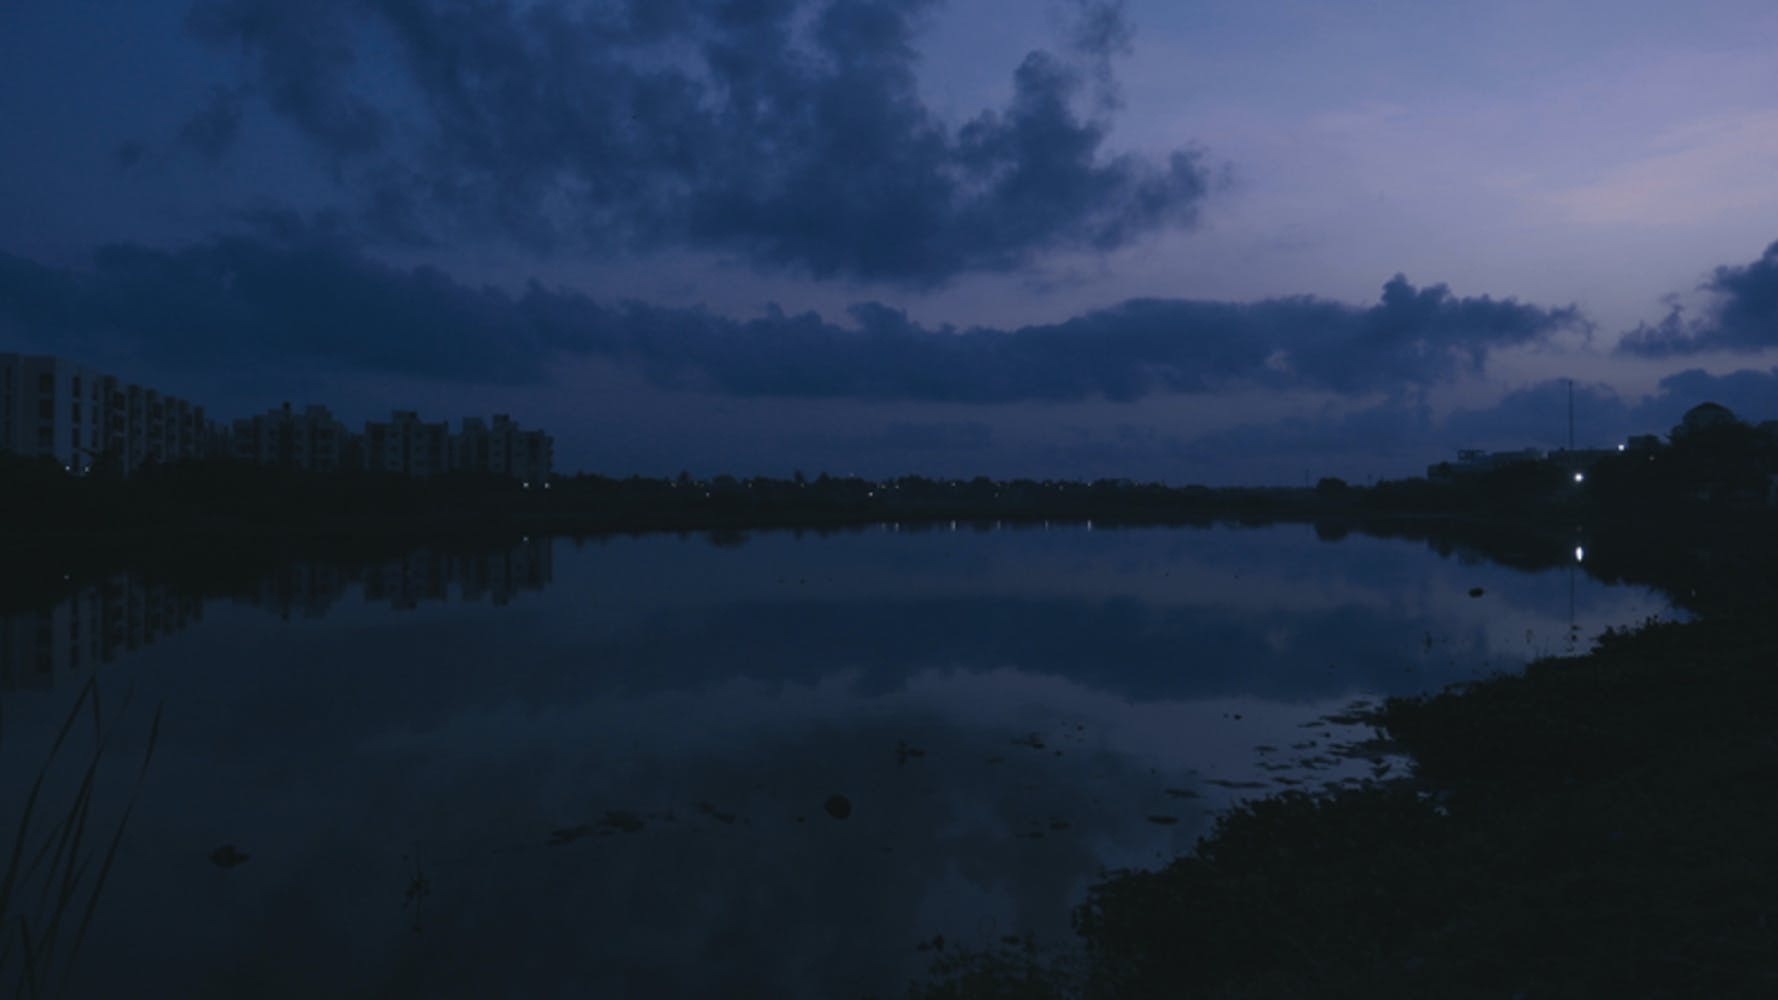 Image of lake in darkness